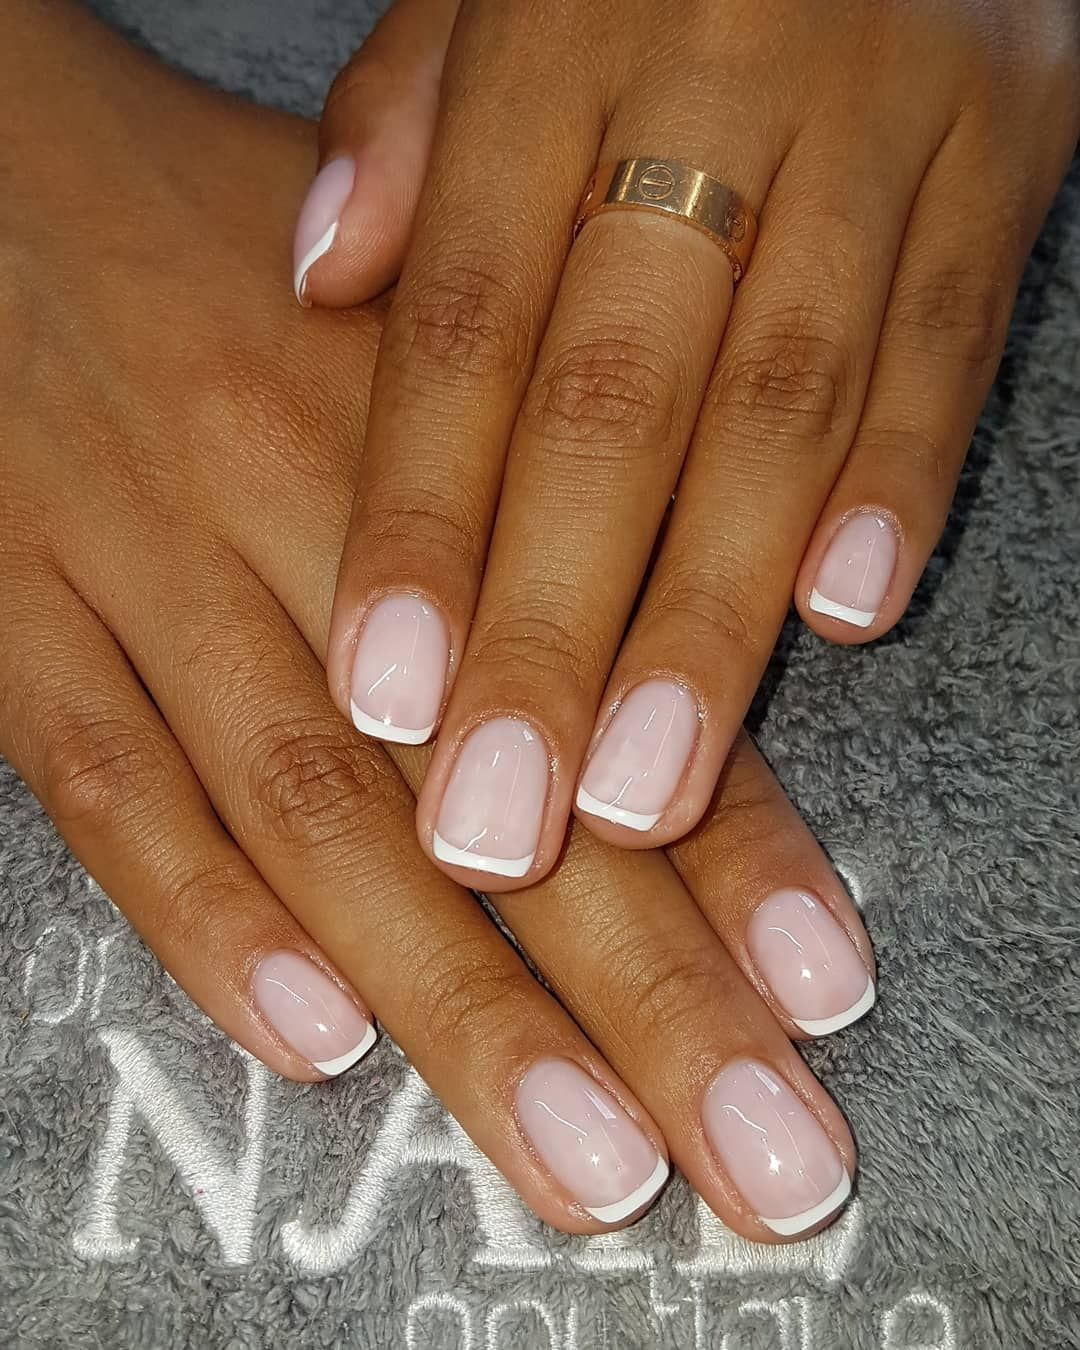 Opi Gel Bubble Bath French Manicure Jessicagiovanna With